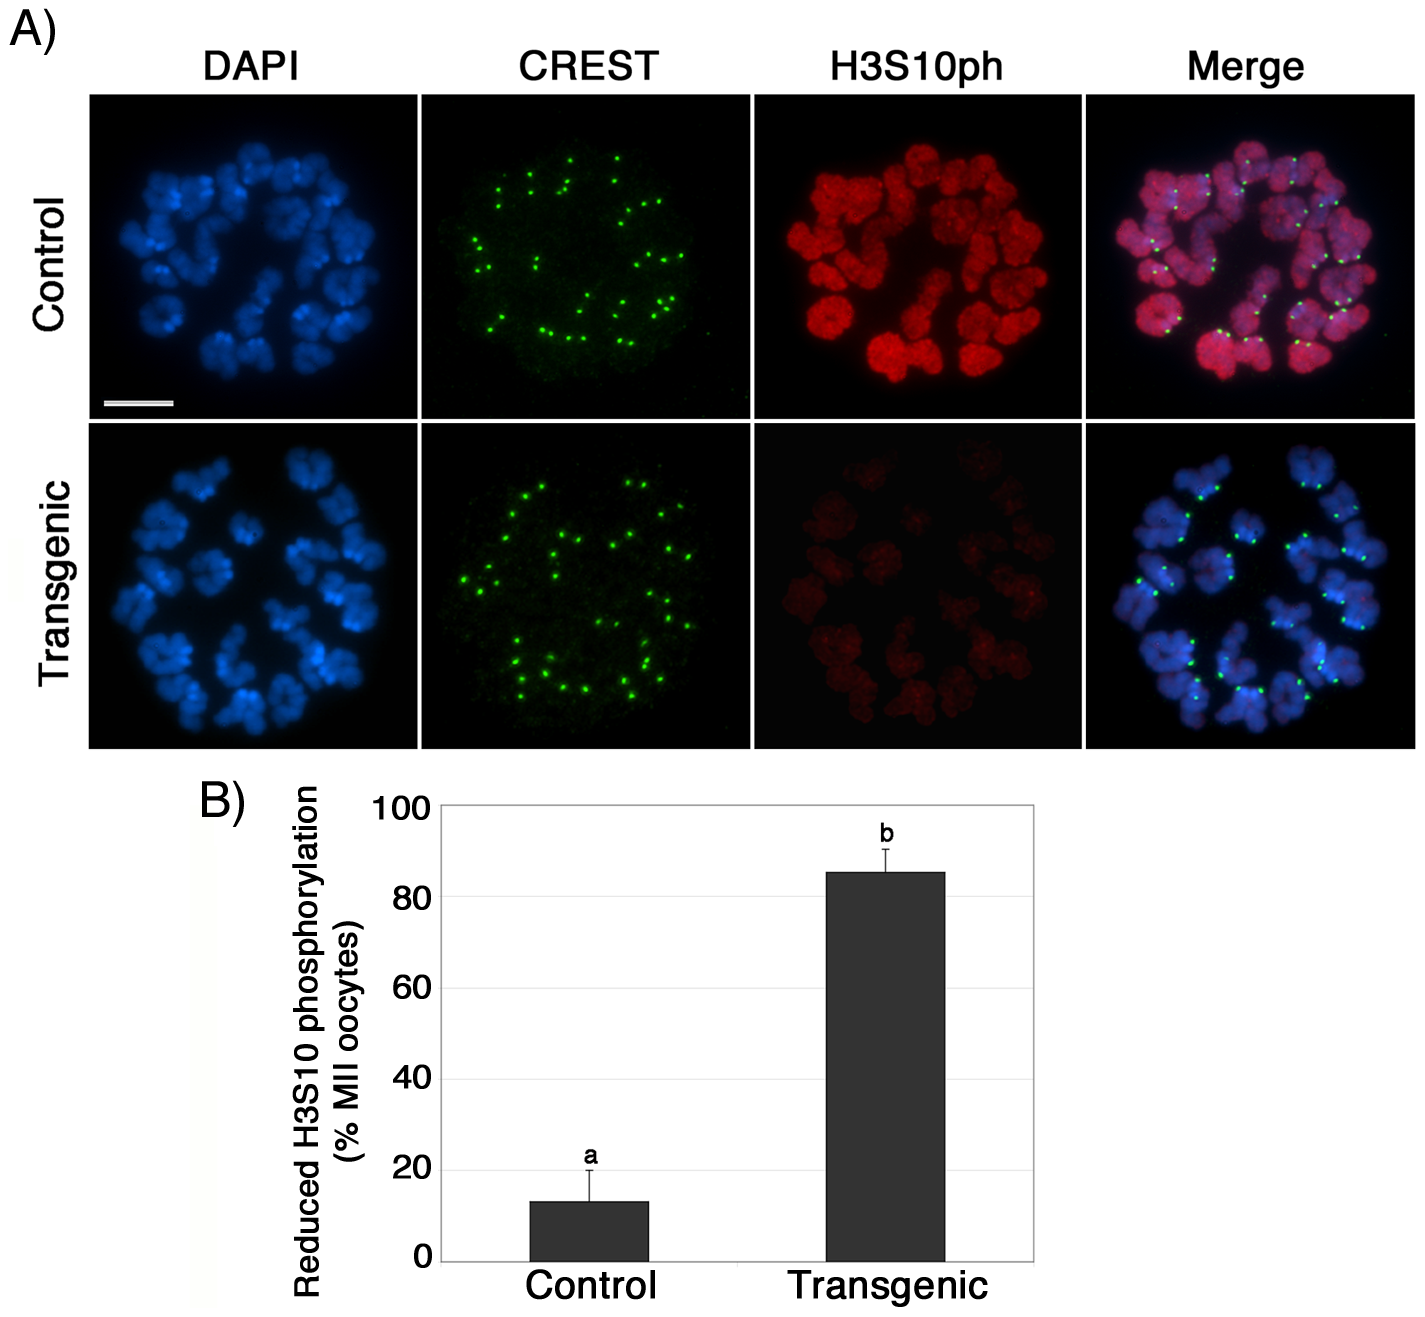 Reduced phosphorylation of histone H3 at serine 10 (H3S10ph) in the chromosomes of ATRX-deficient oocytes.